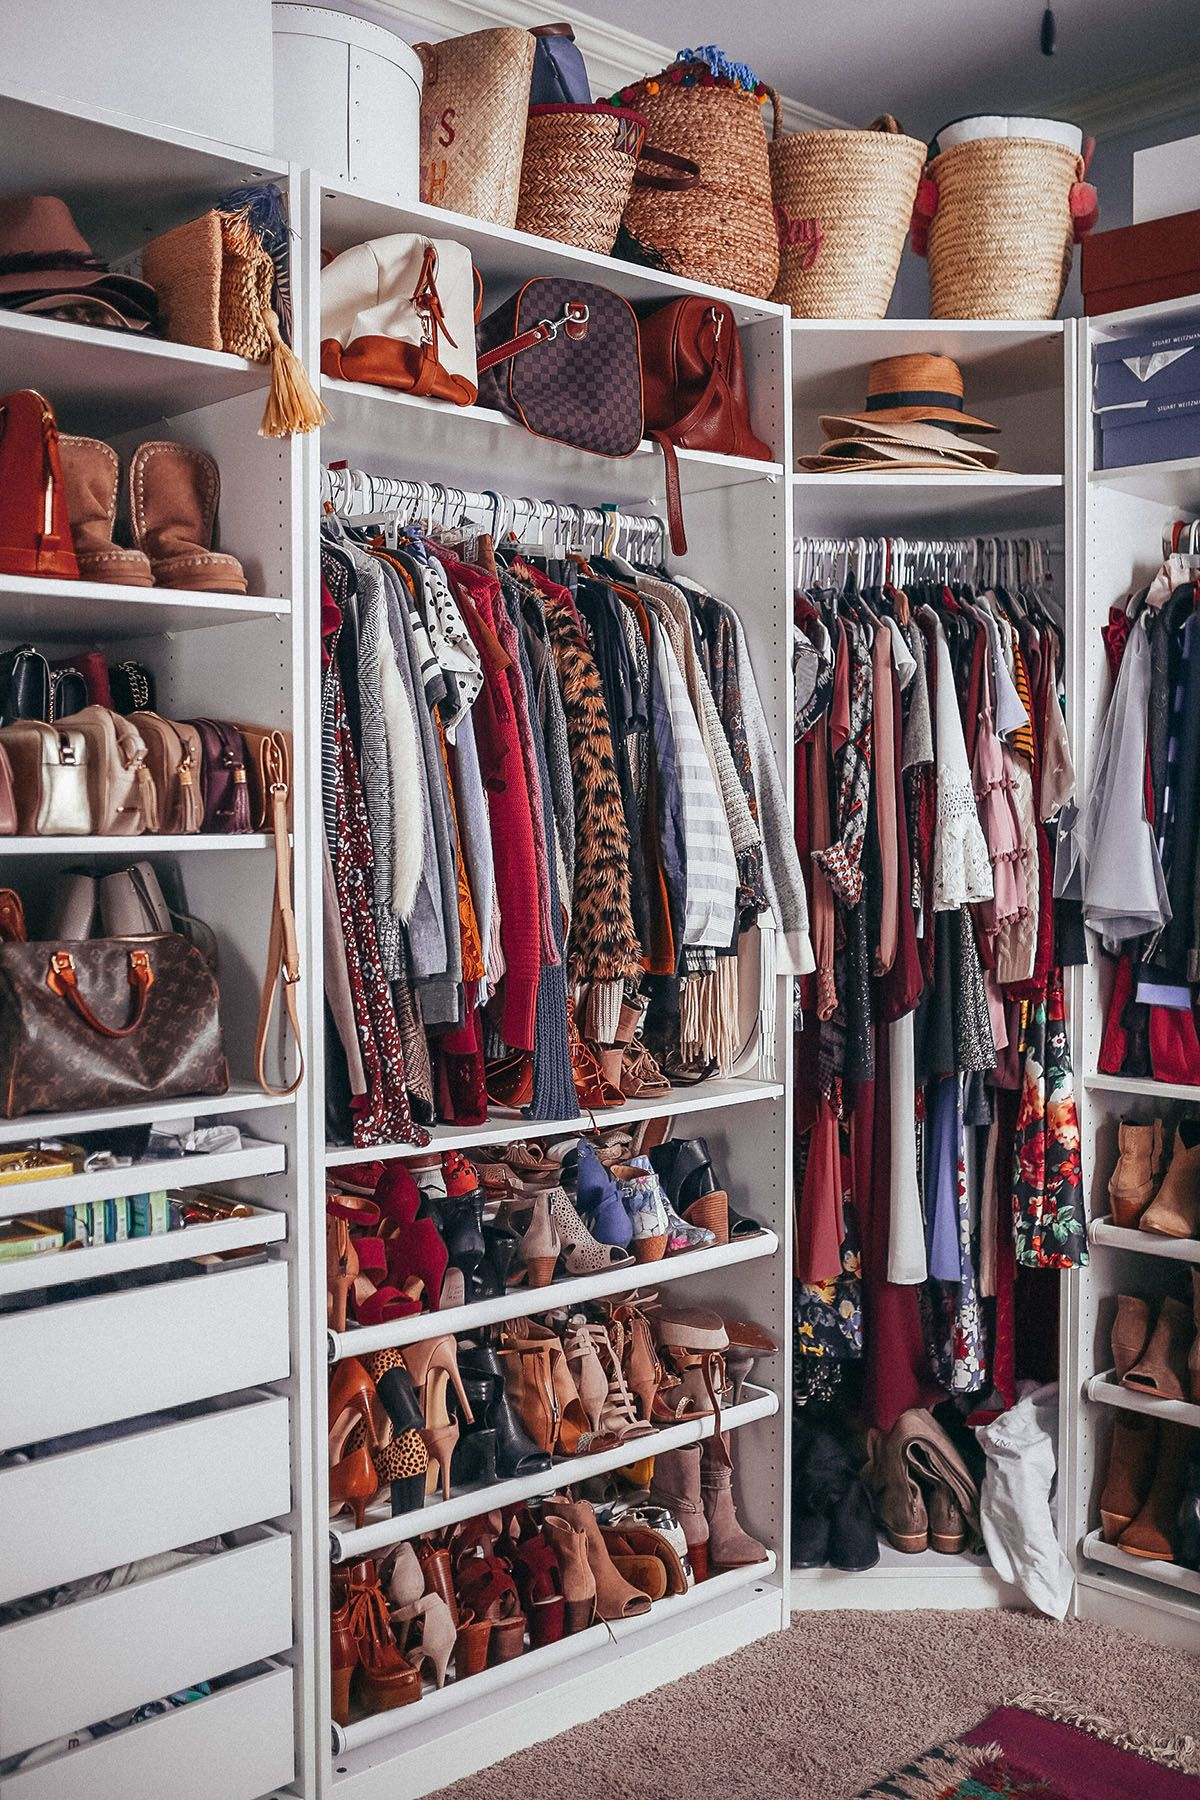 How To Clean Our Your Closet Organization